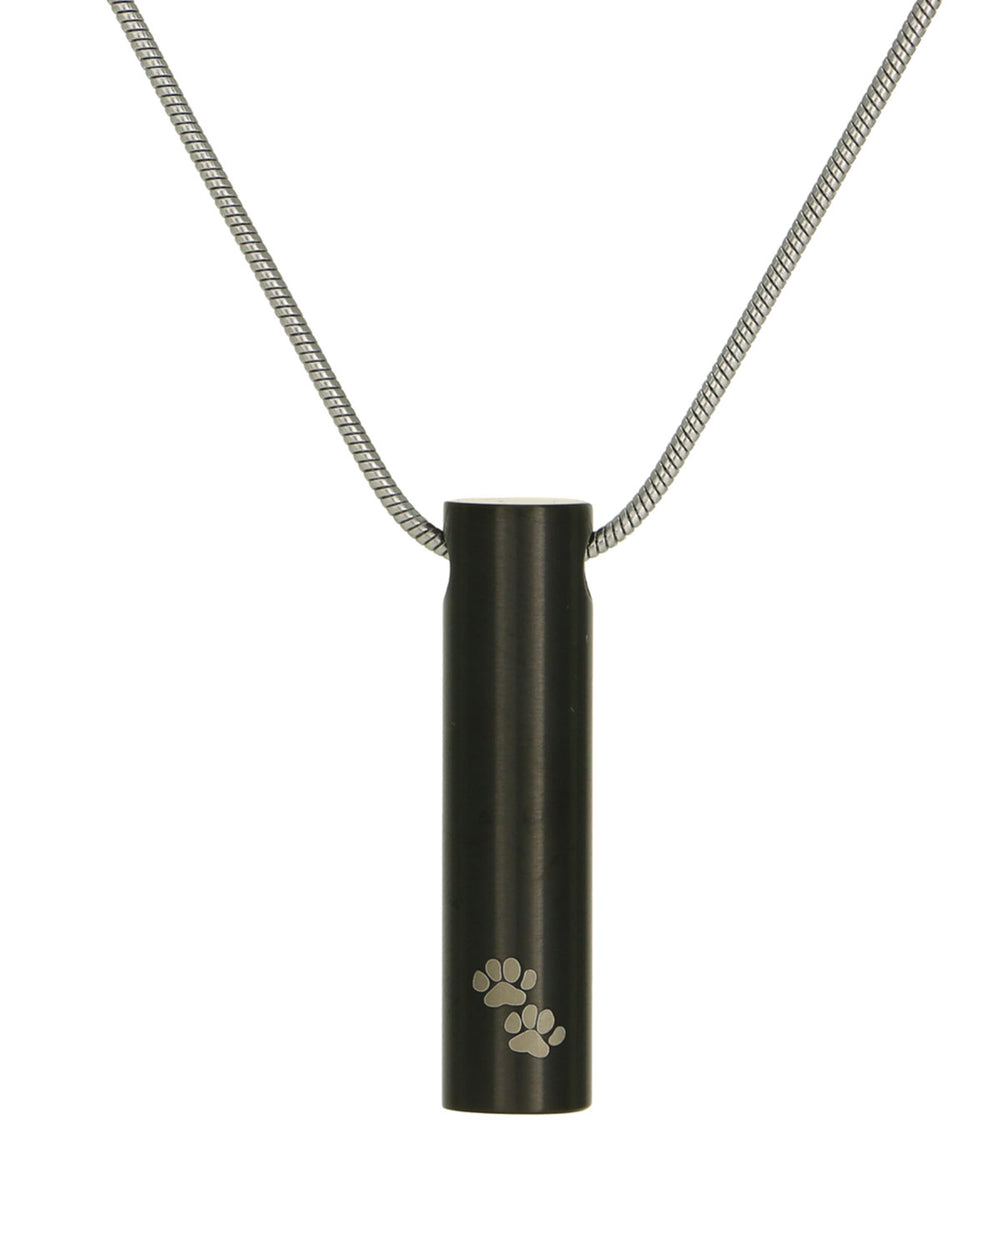 Cylinder Jewelry Pendant - Onyx with Paws